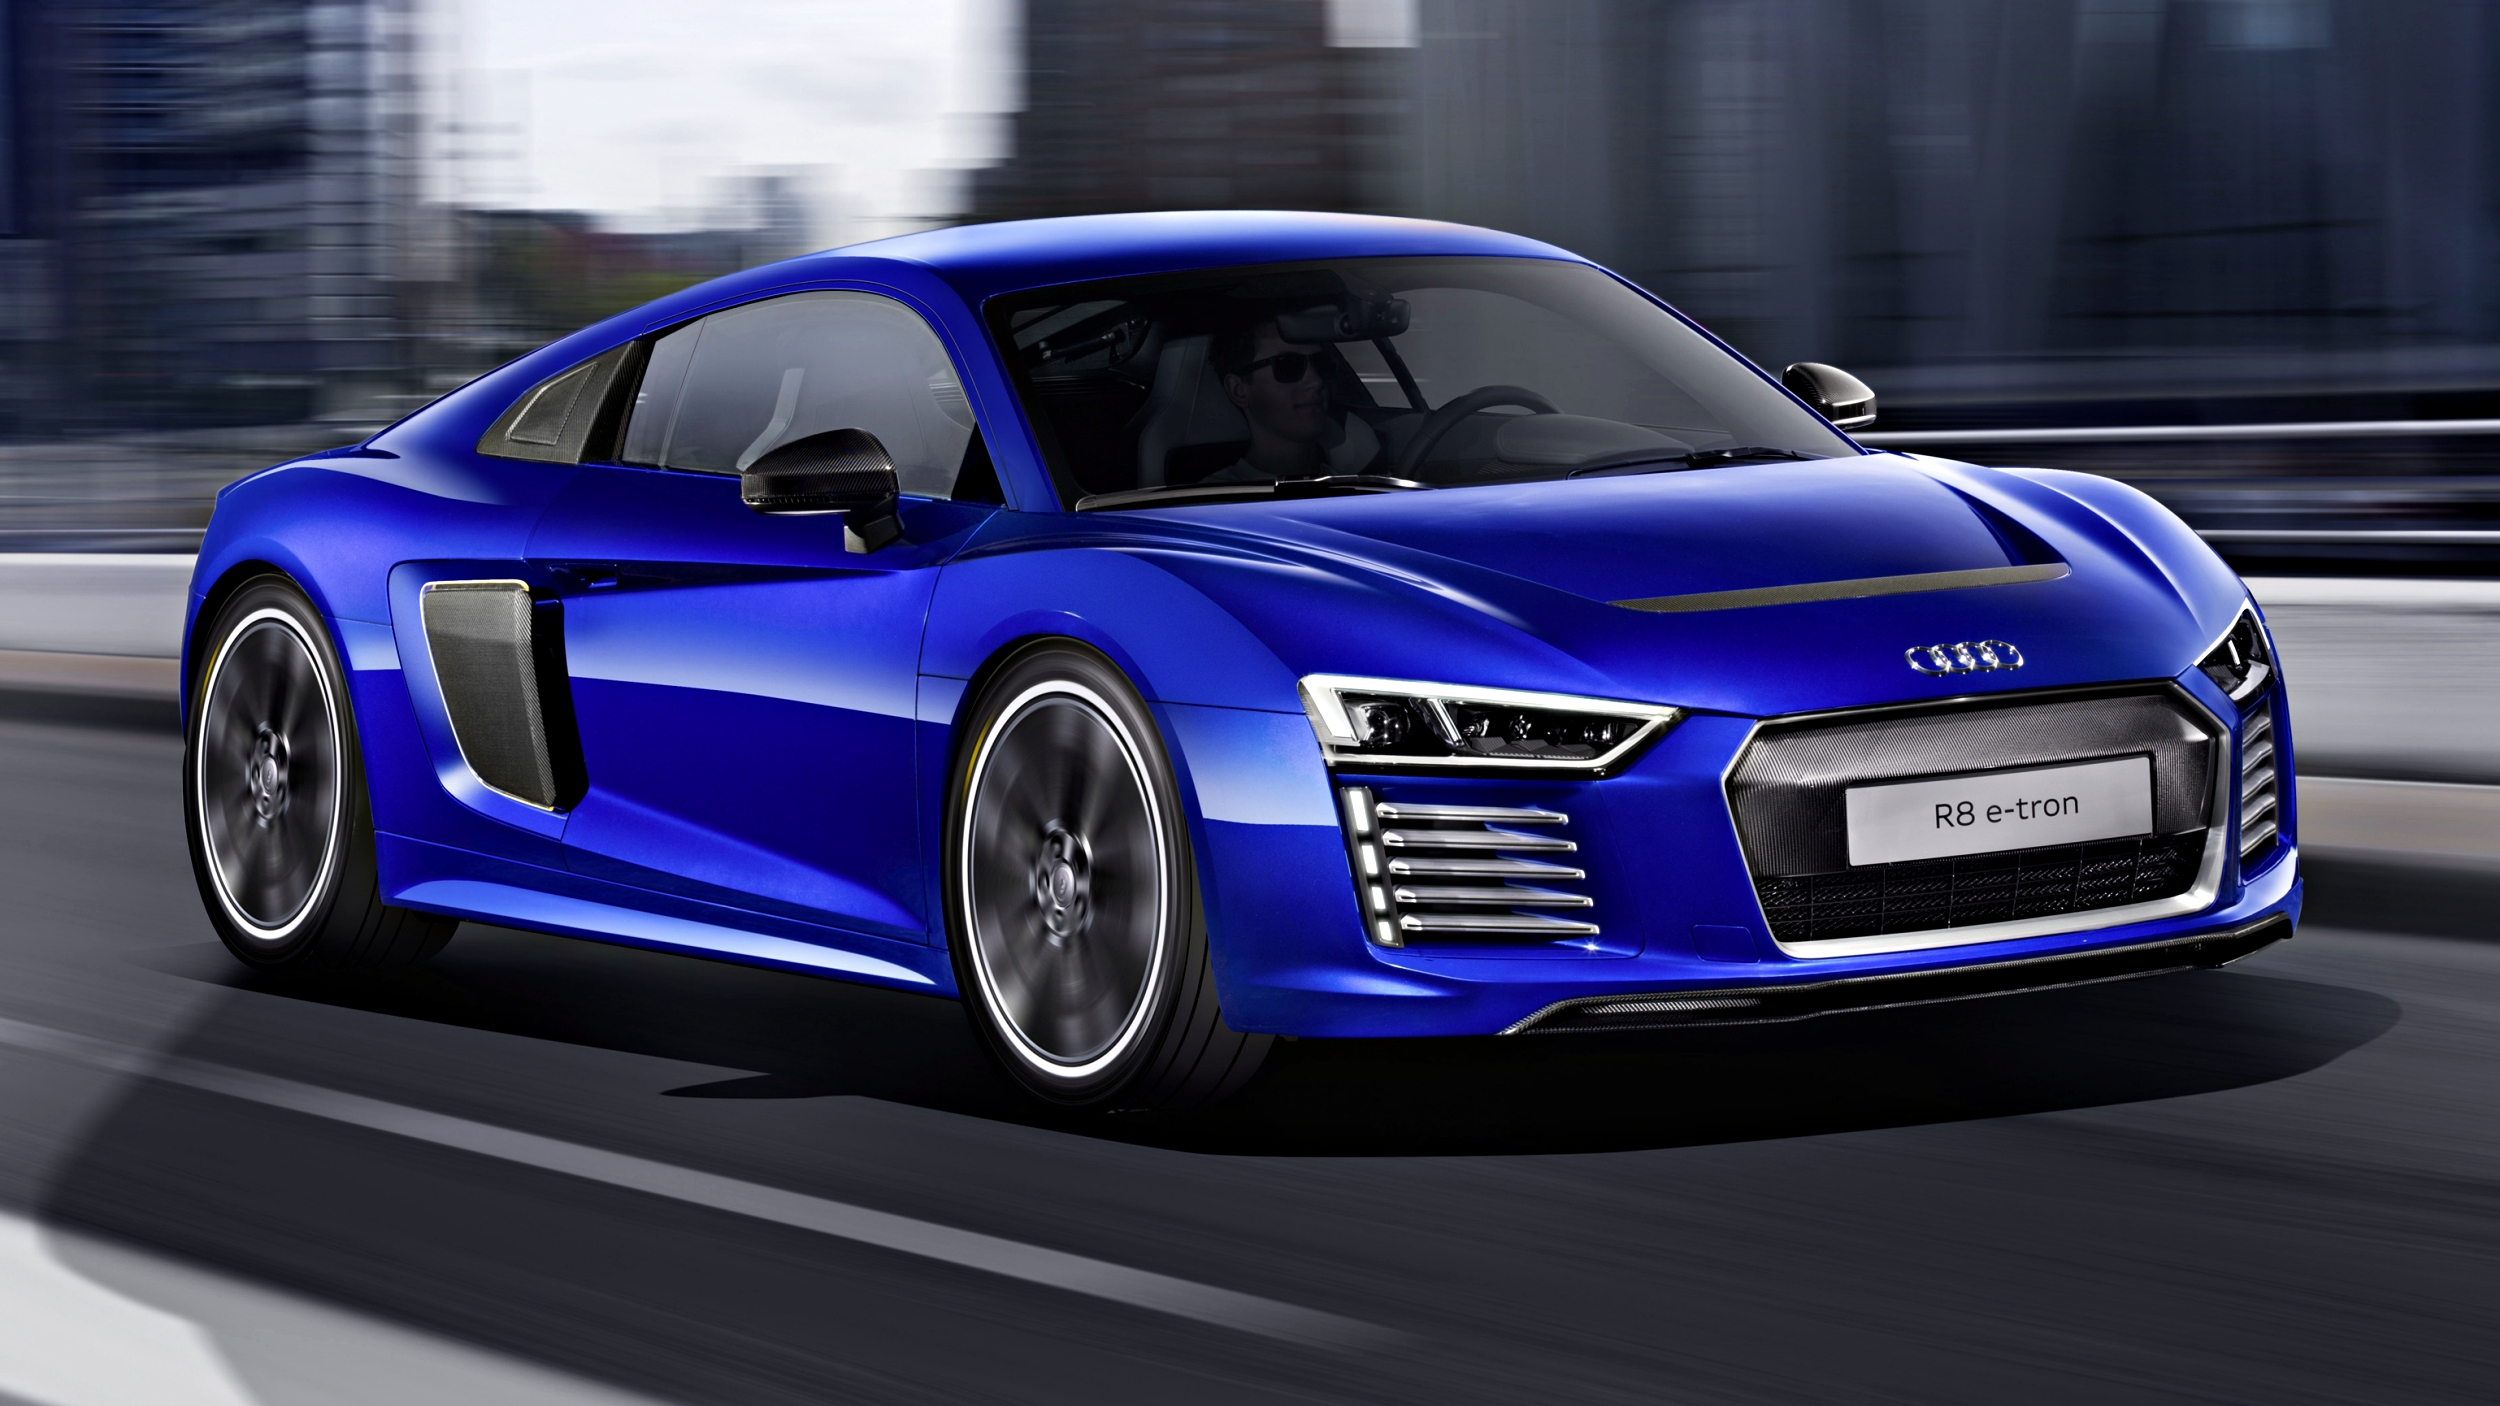 News - 2022 Audi R8 To Be Reborn As E-Tron – Report